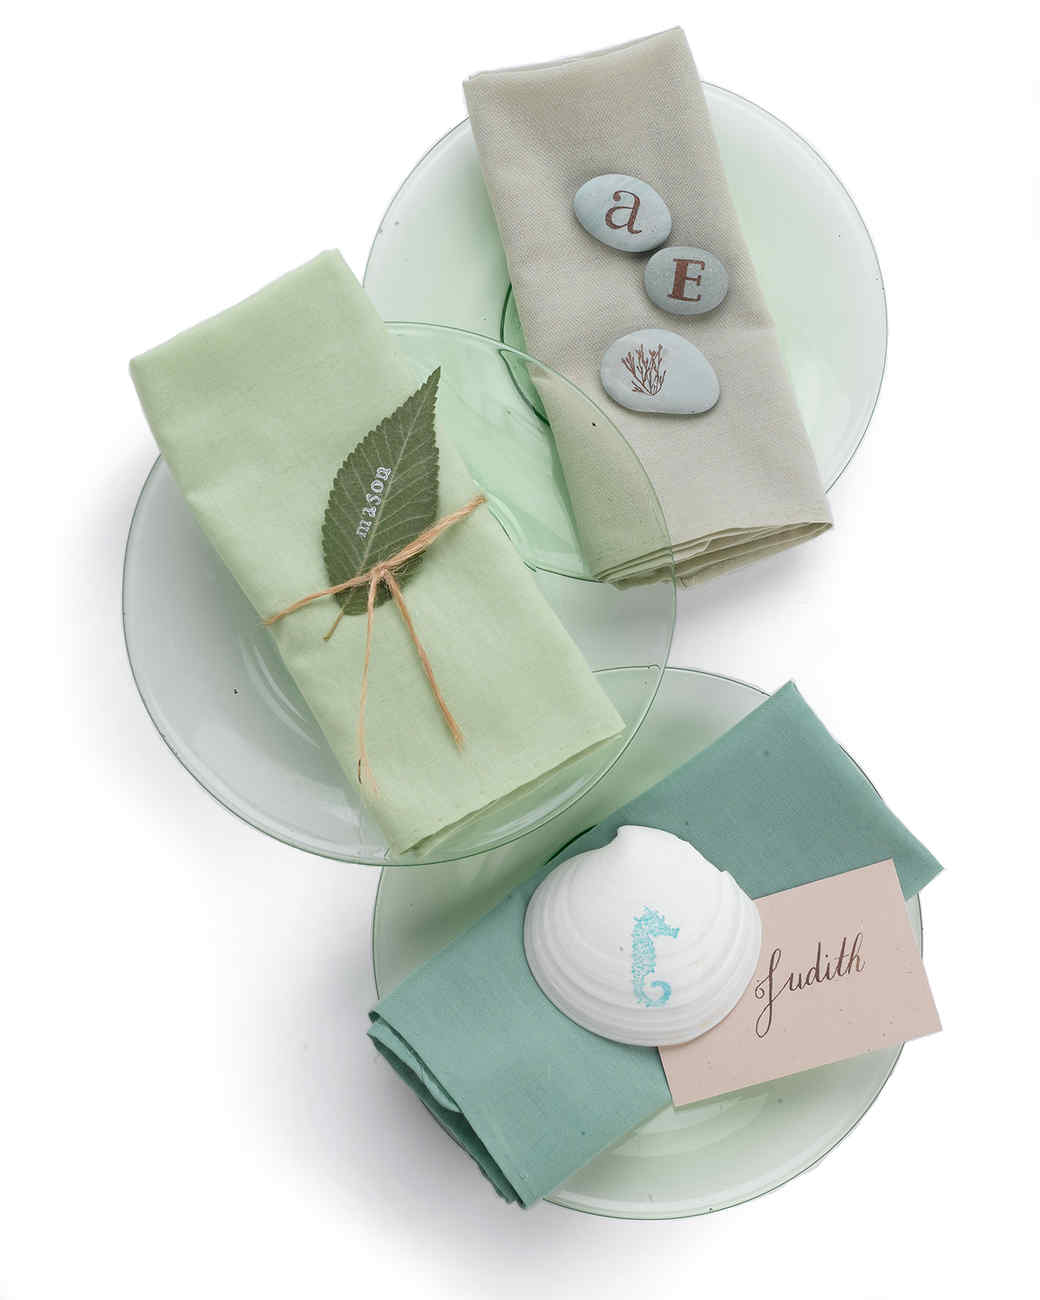 Rubber-Stamped Place Cards